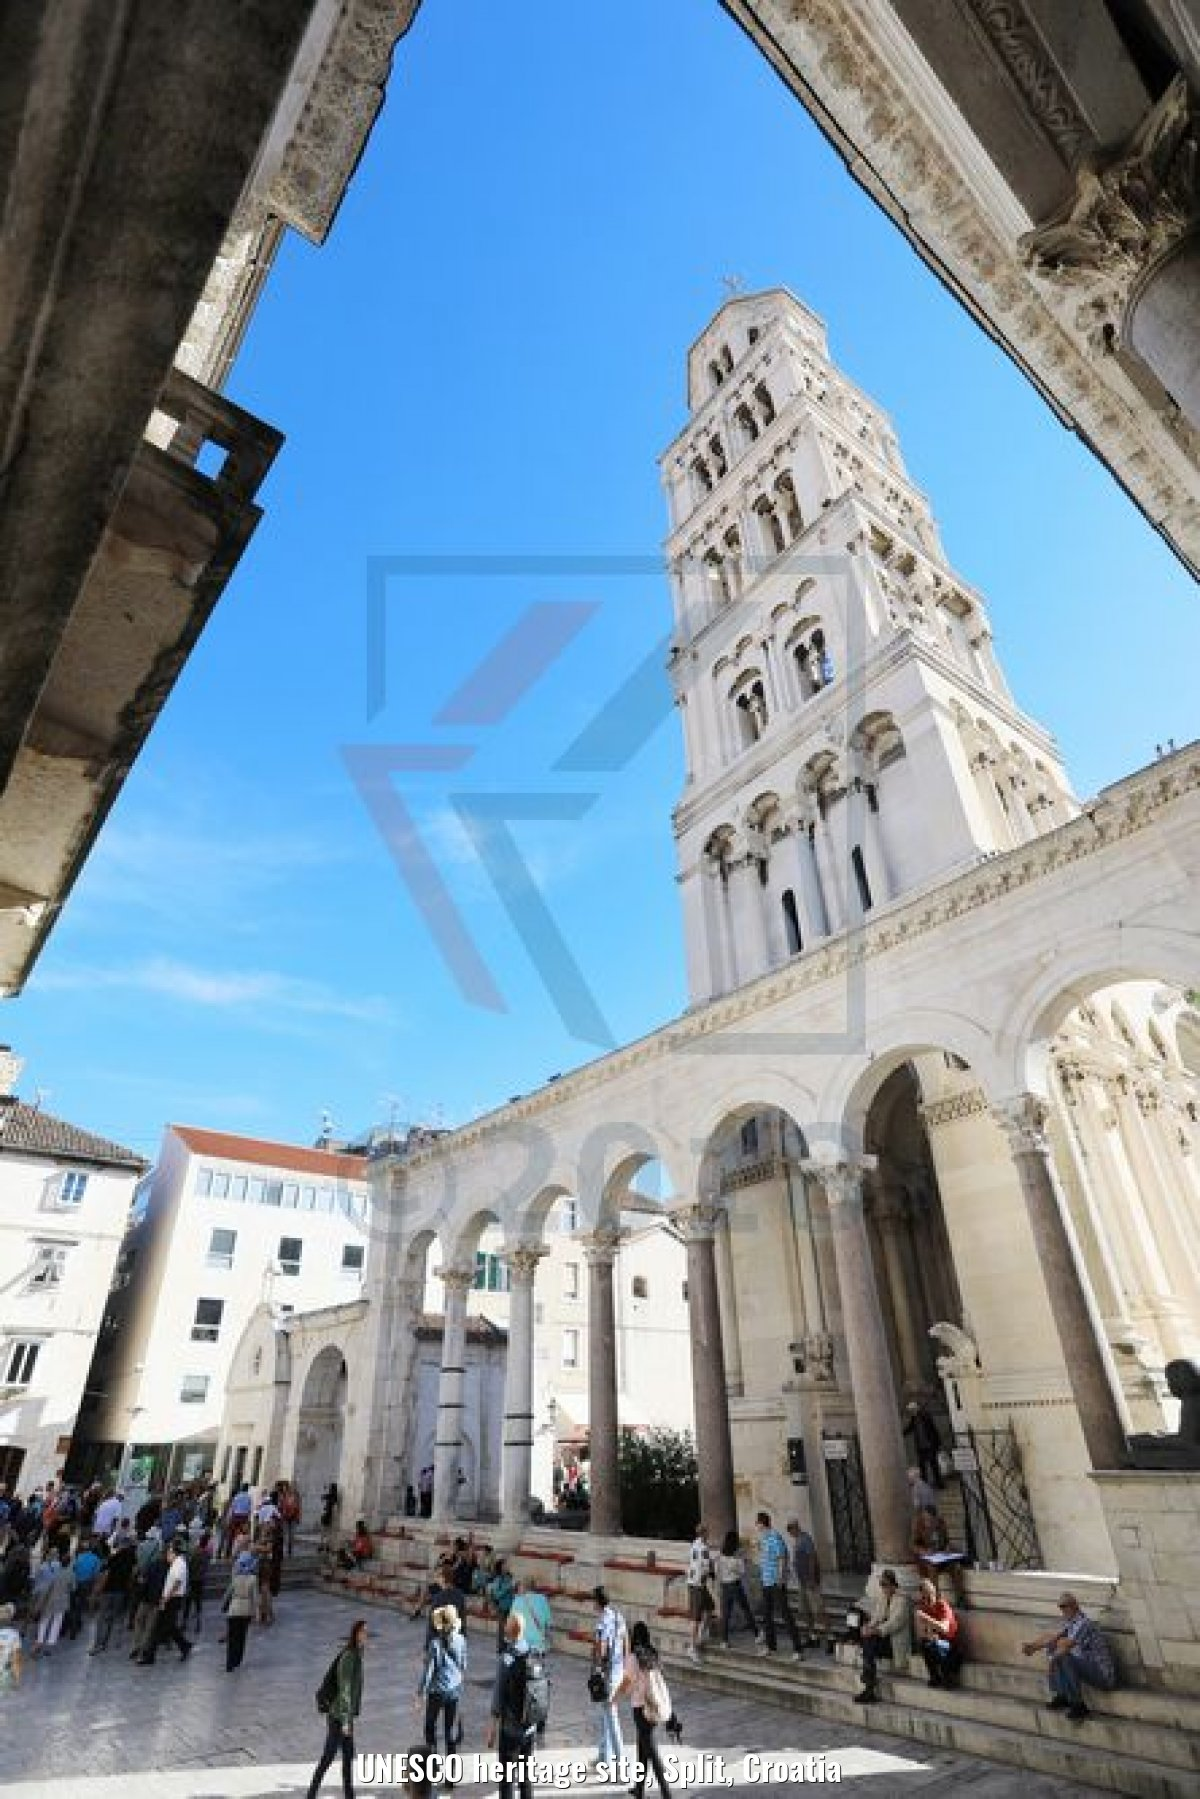 UNESCO heritage site, Split, Croatia